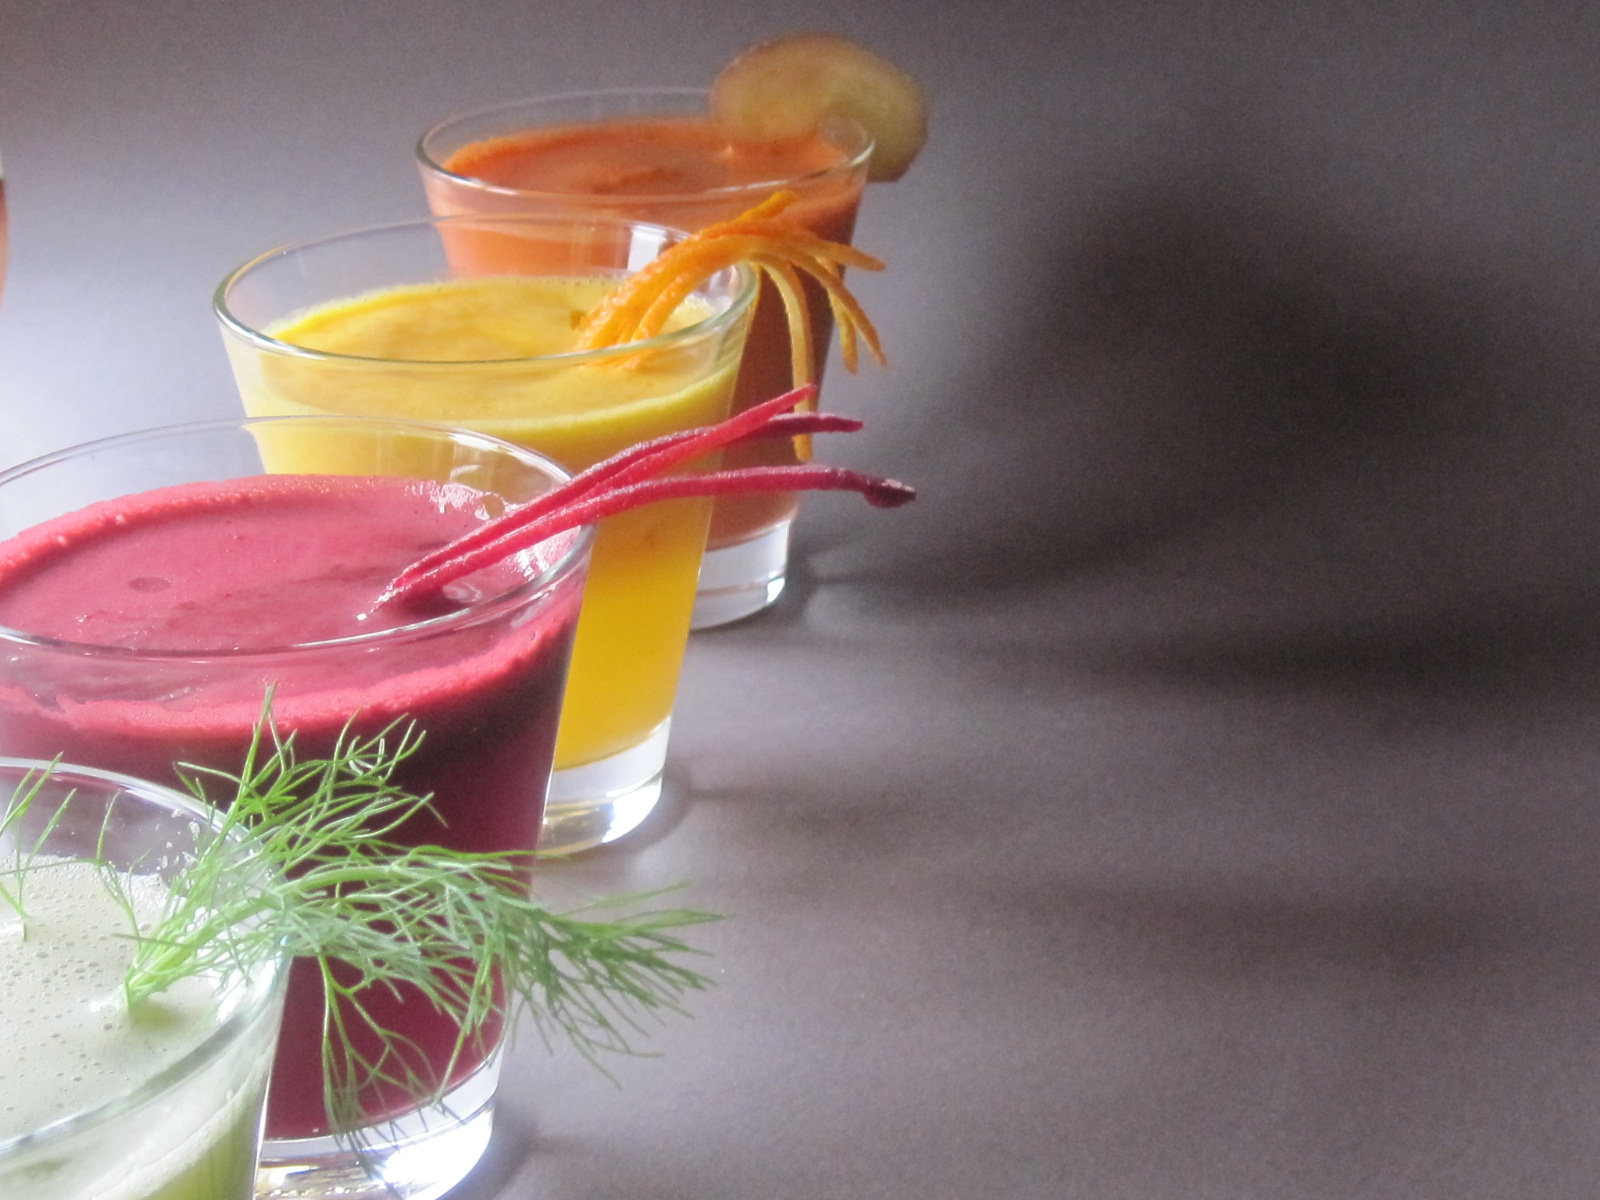 juice healthy fruits drinks recipes vegetables food health fruit vegetable healthyfoodhouse juices pear apricot helps kidney stones drinks1 heart